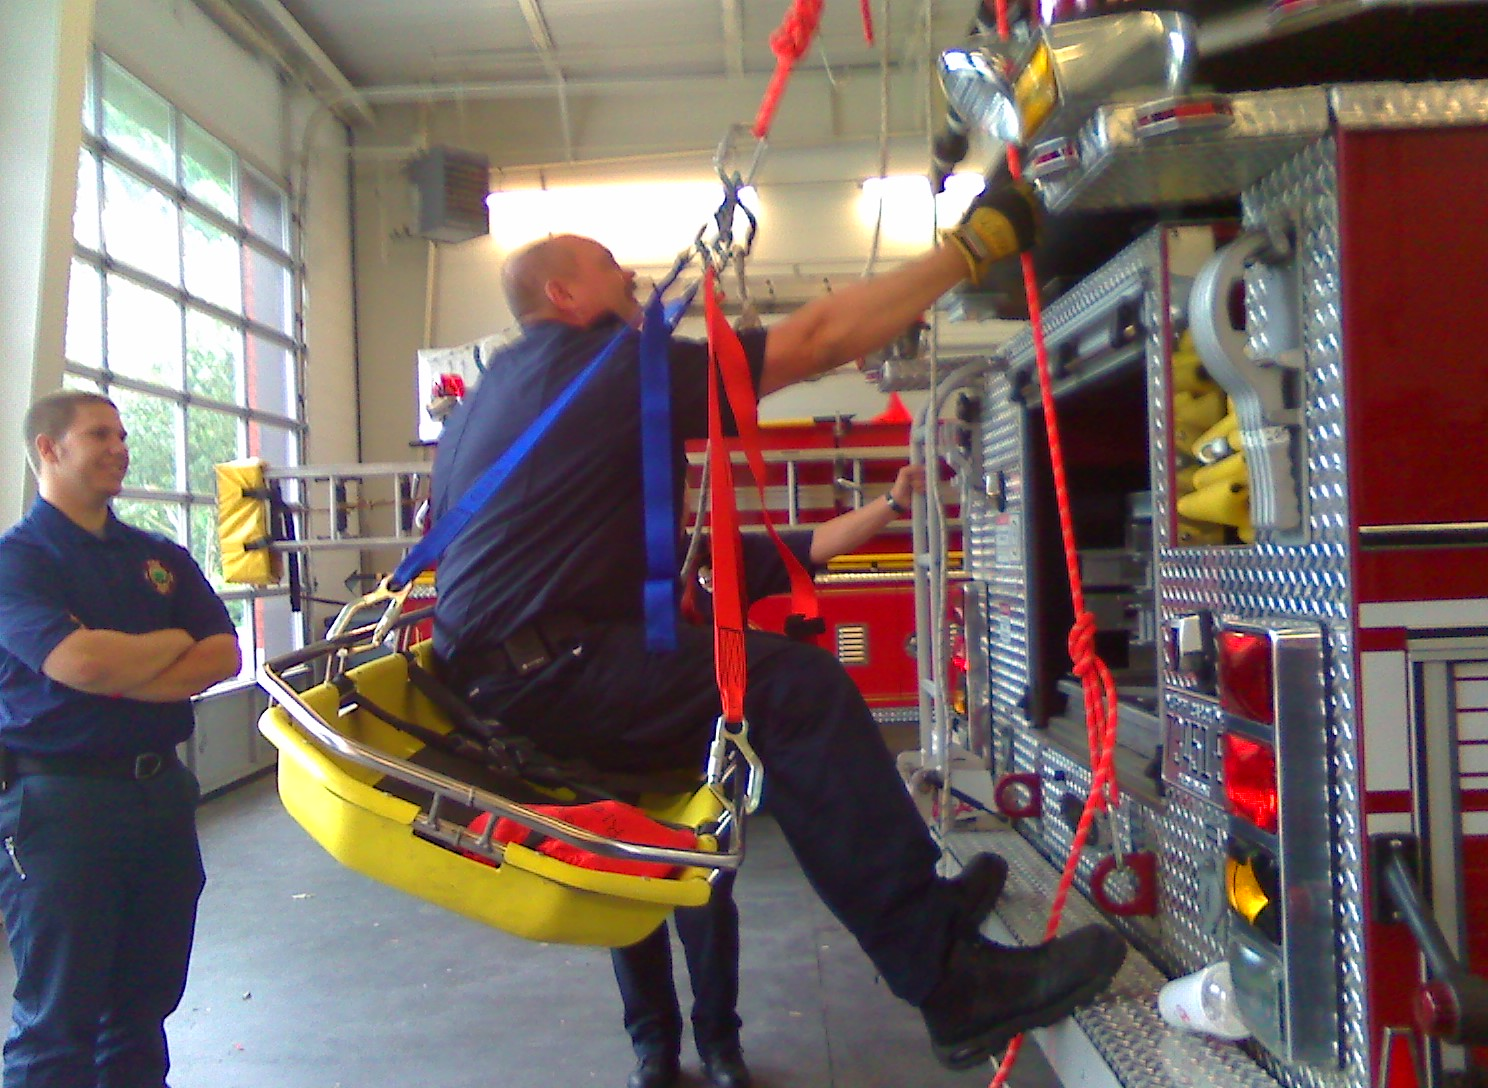 fire dept training with patient basket